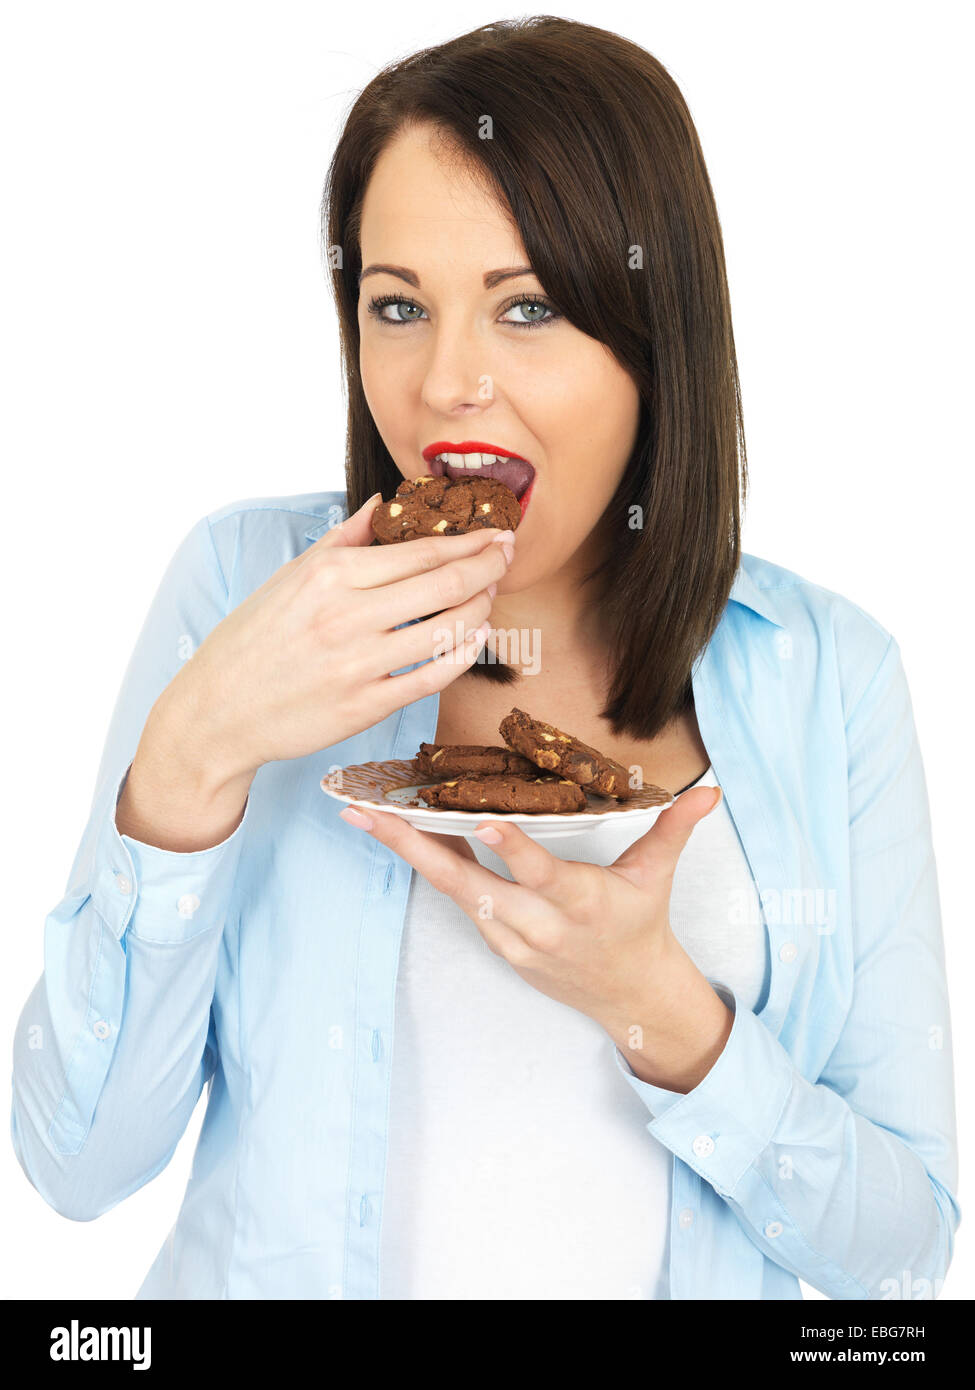 Attractive Twenty Something Woman Eating Biscuits - Stock Image